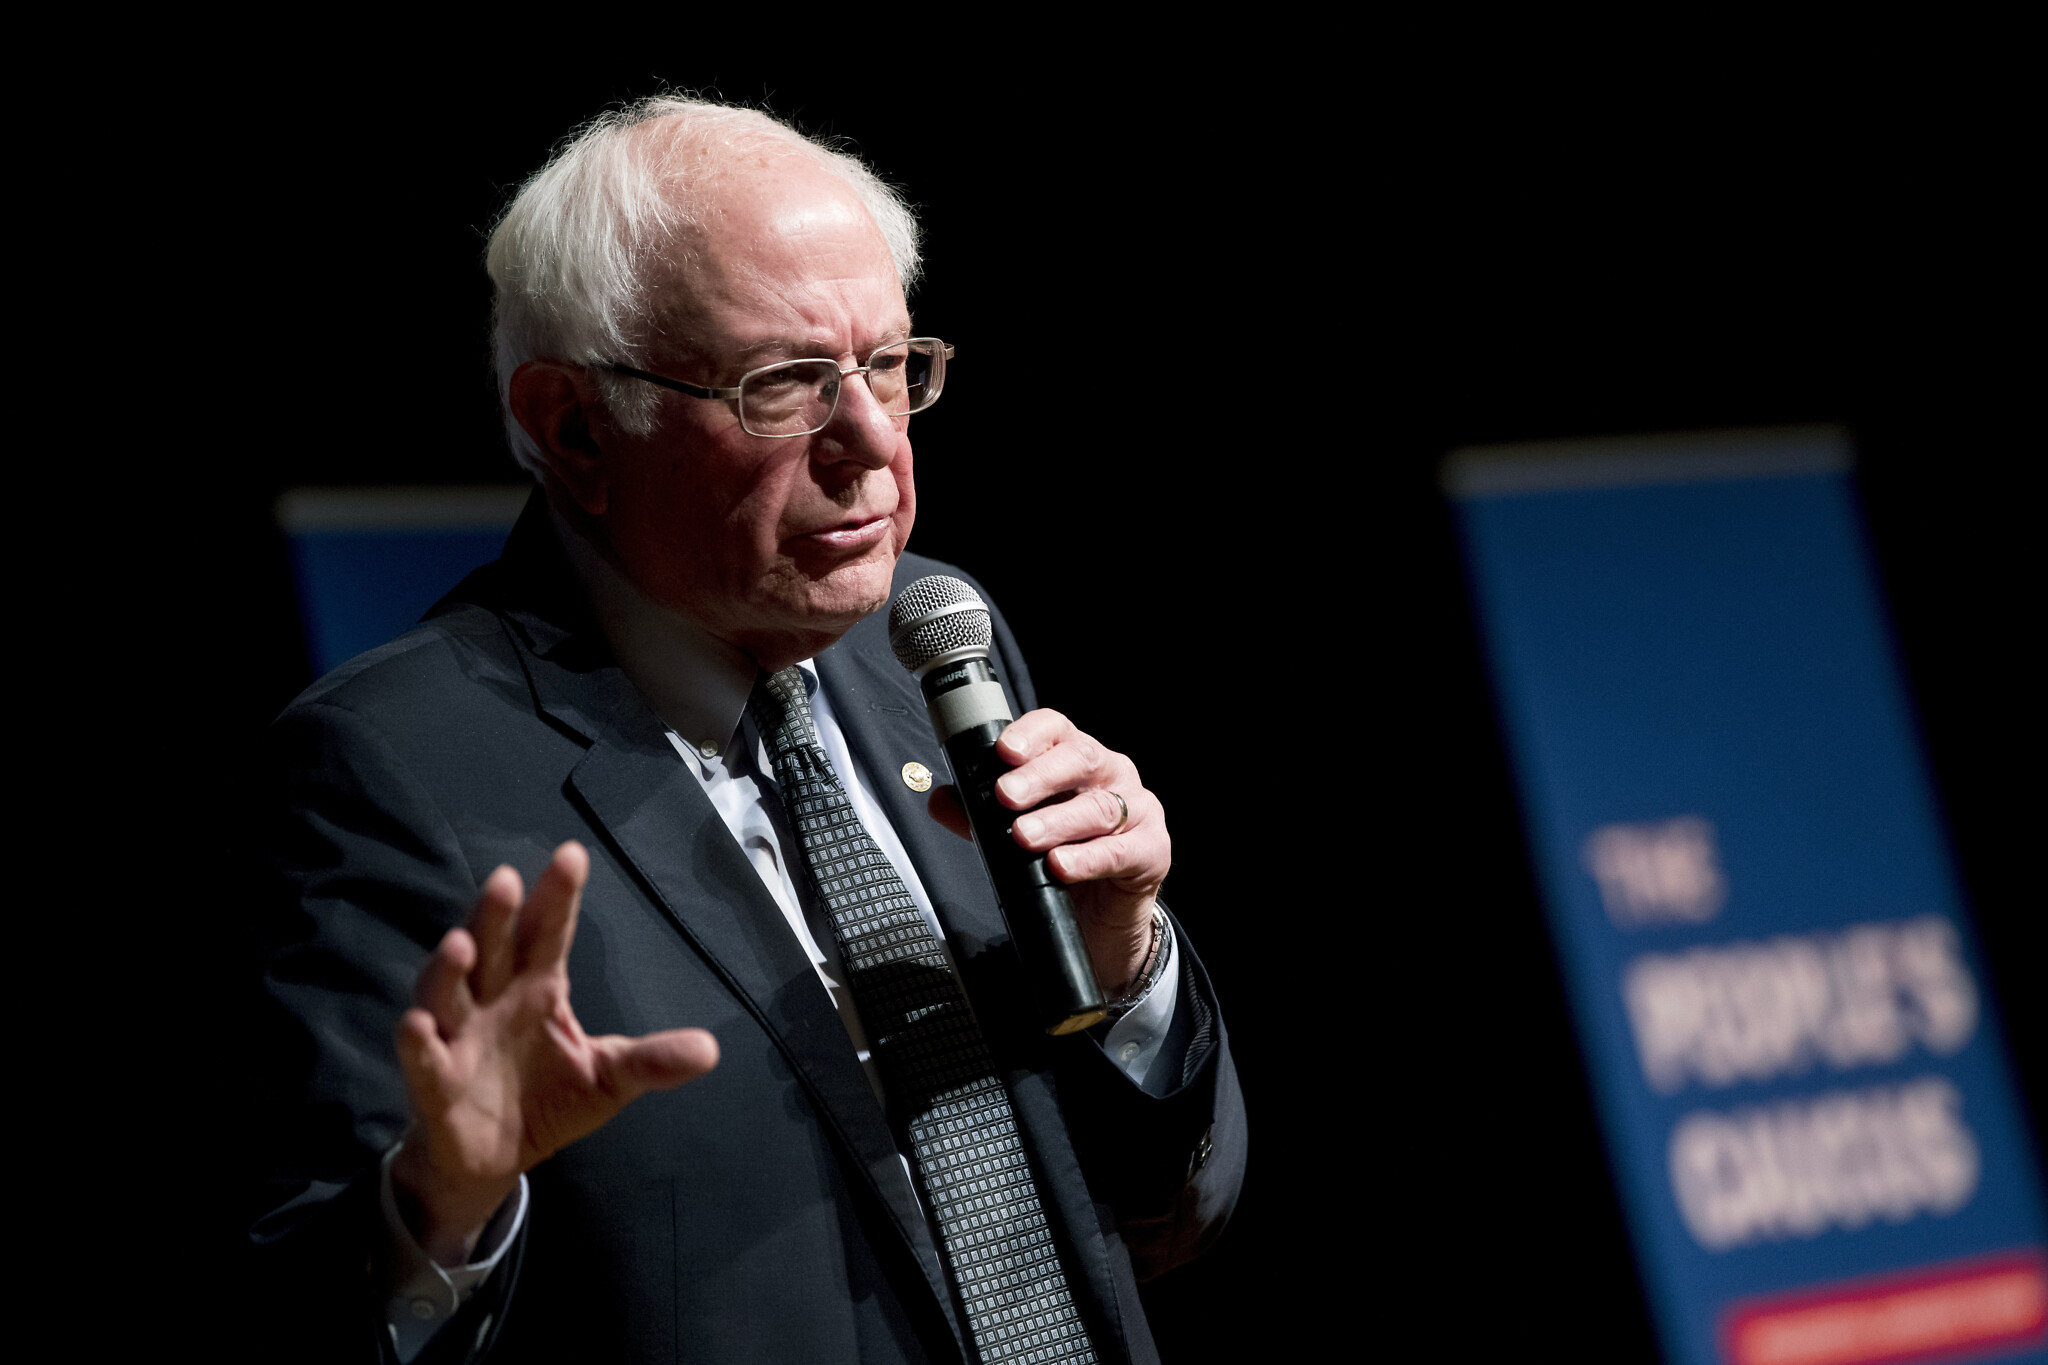 Sanders' rise in polls alarms Democratic political establishment